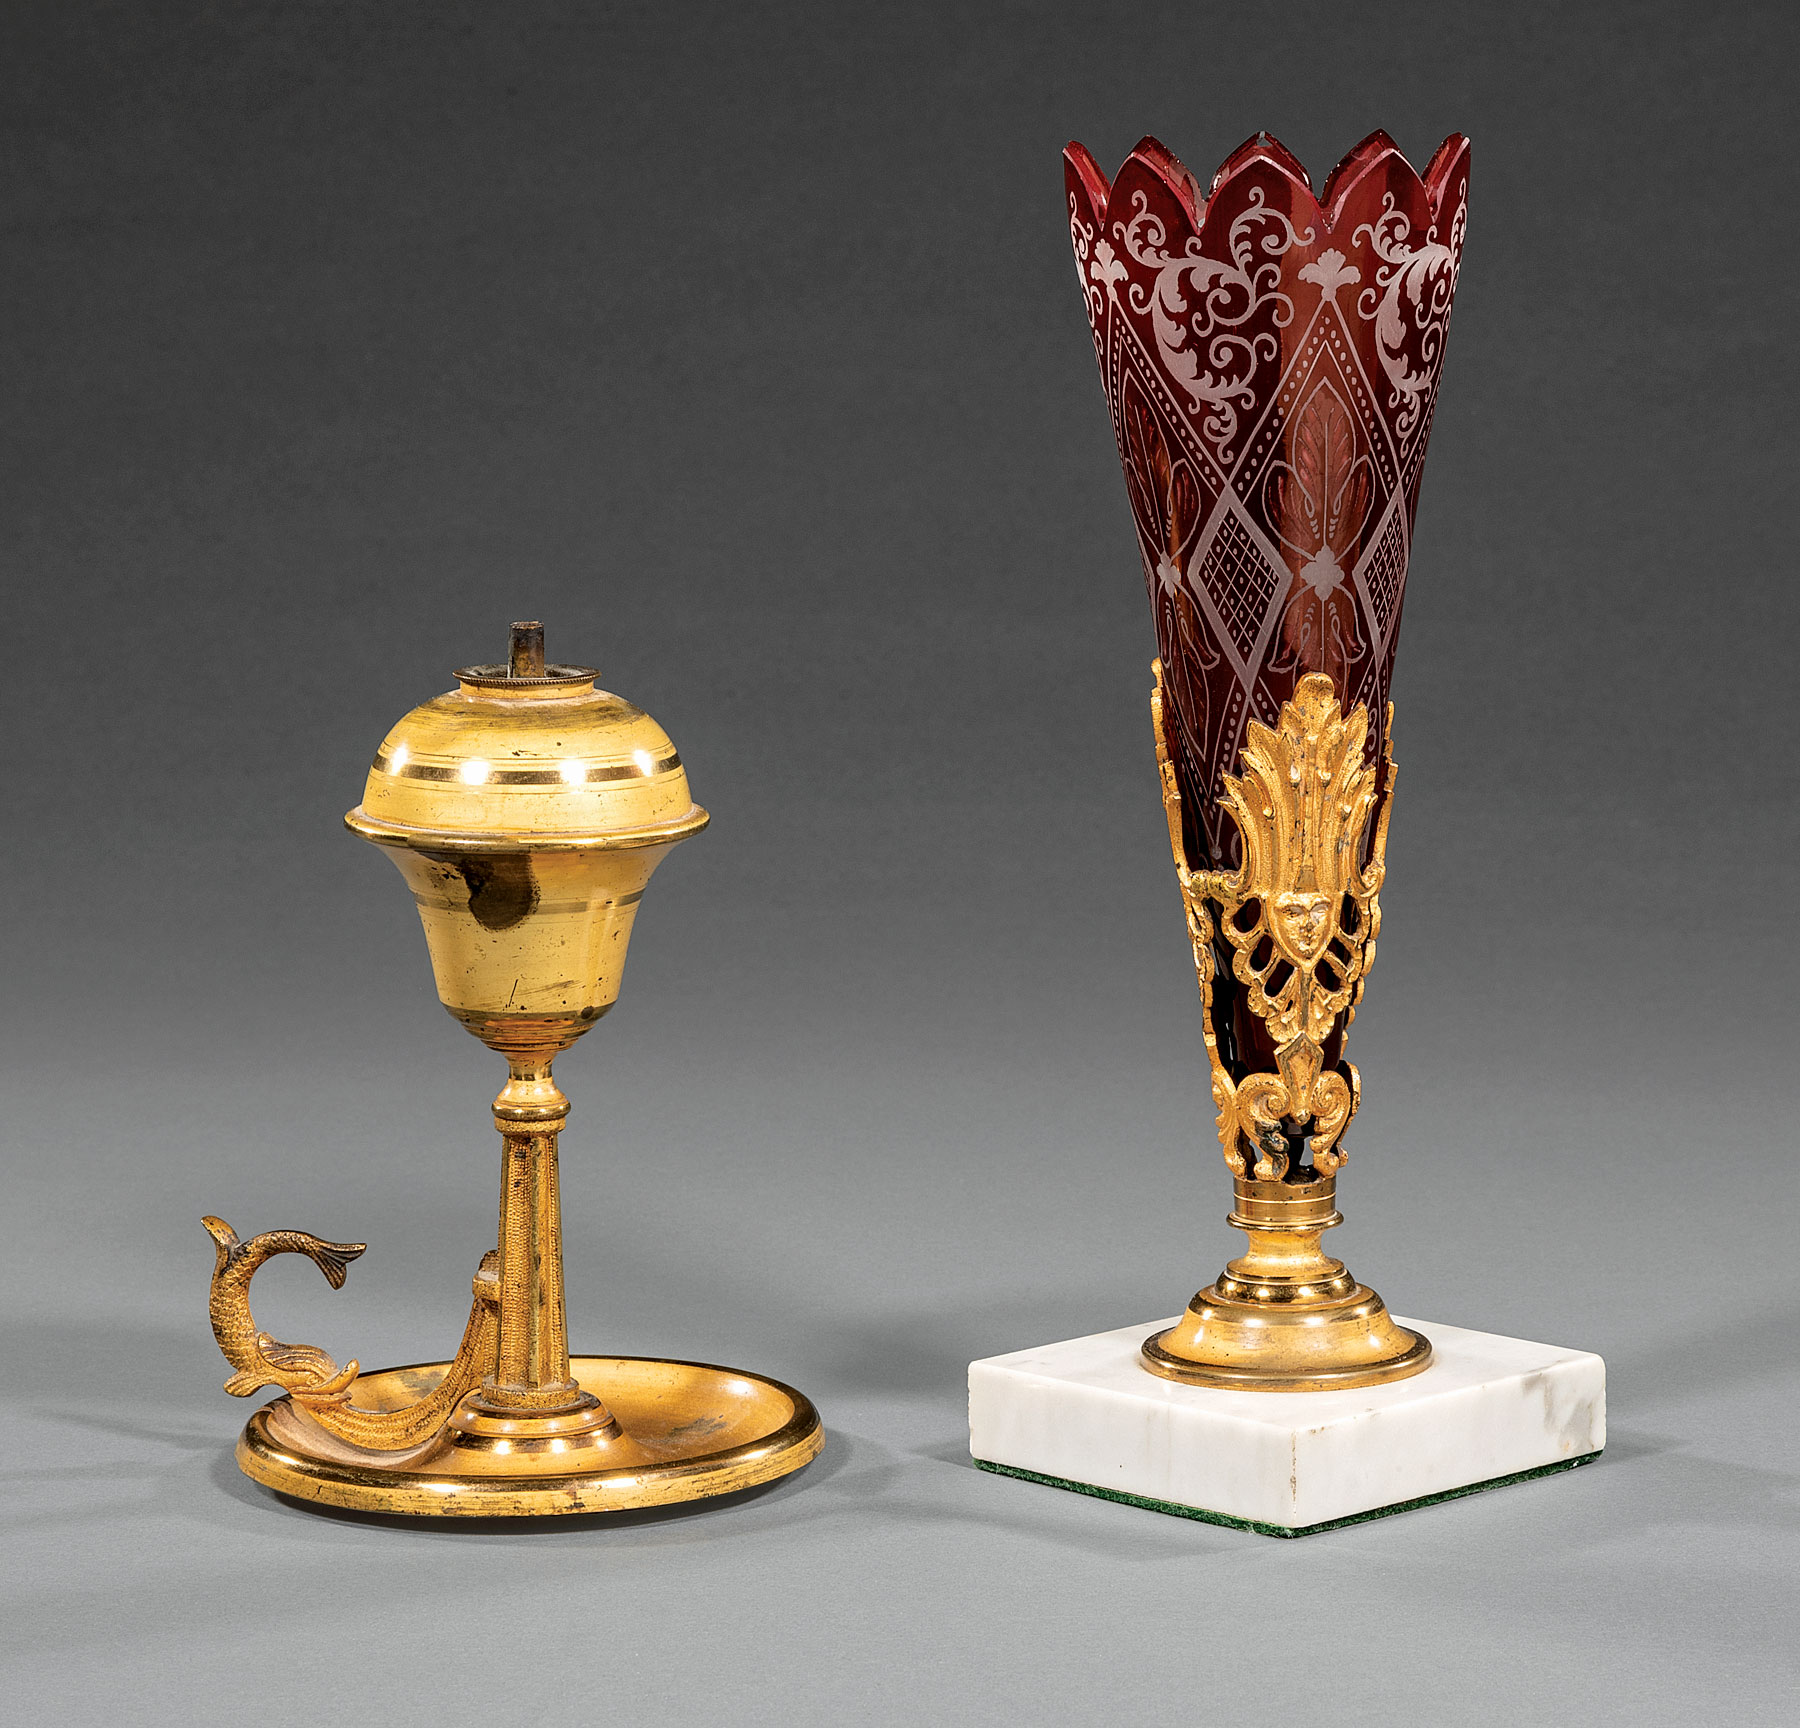 Lot 649 - American Gilt Brass Chamberstick , 19th c., dolphin handle, matte and burnished surface, h. 7 in.;